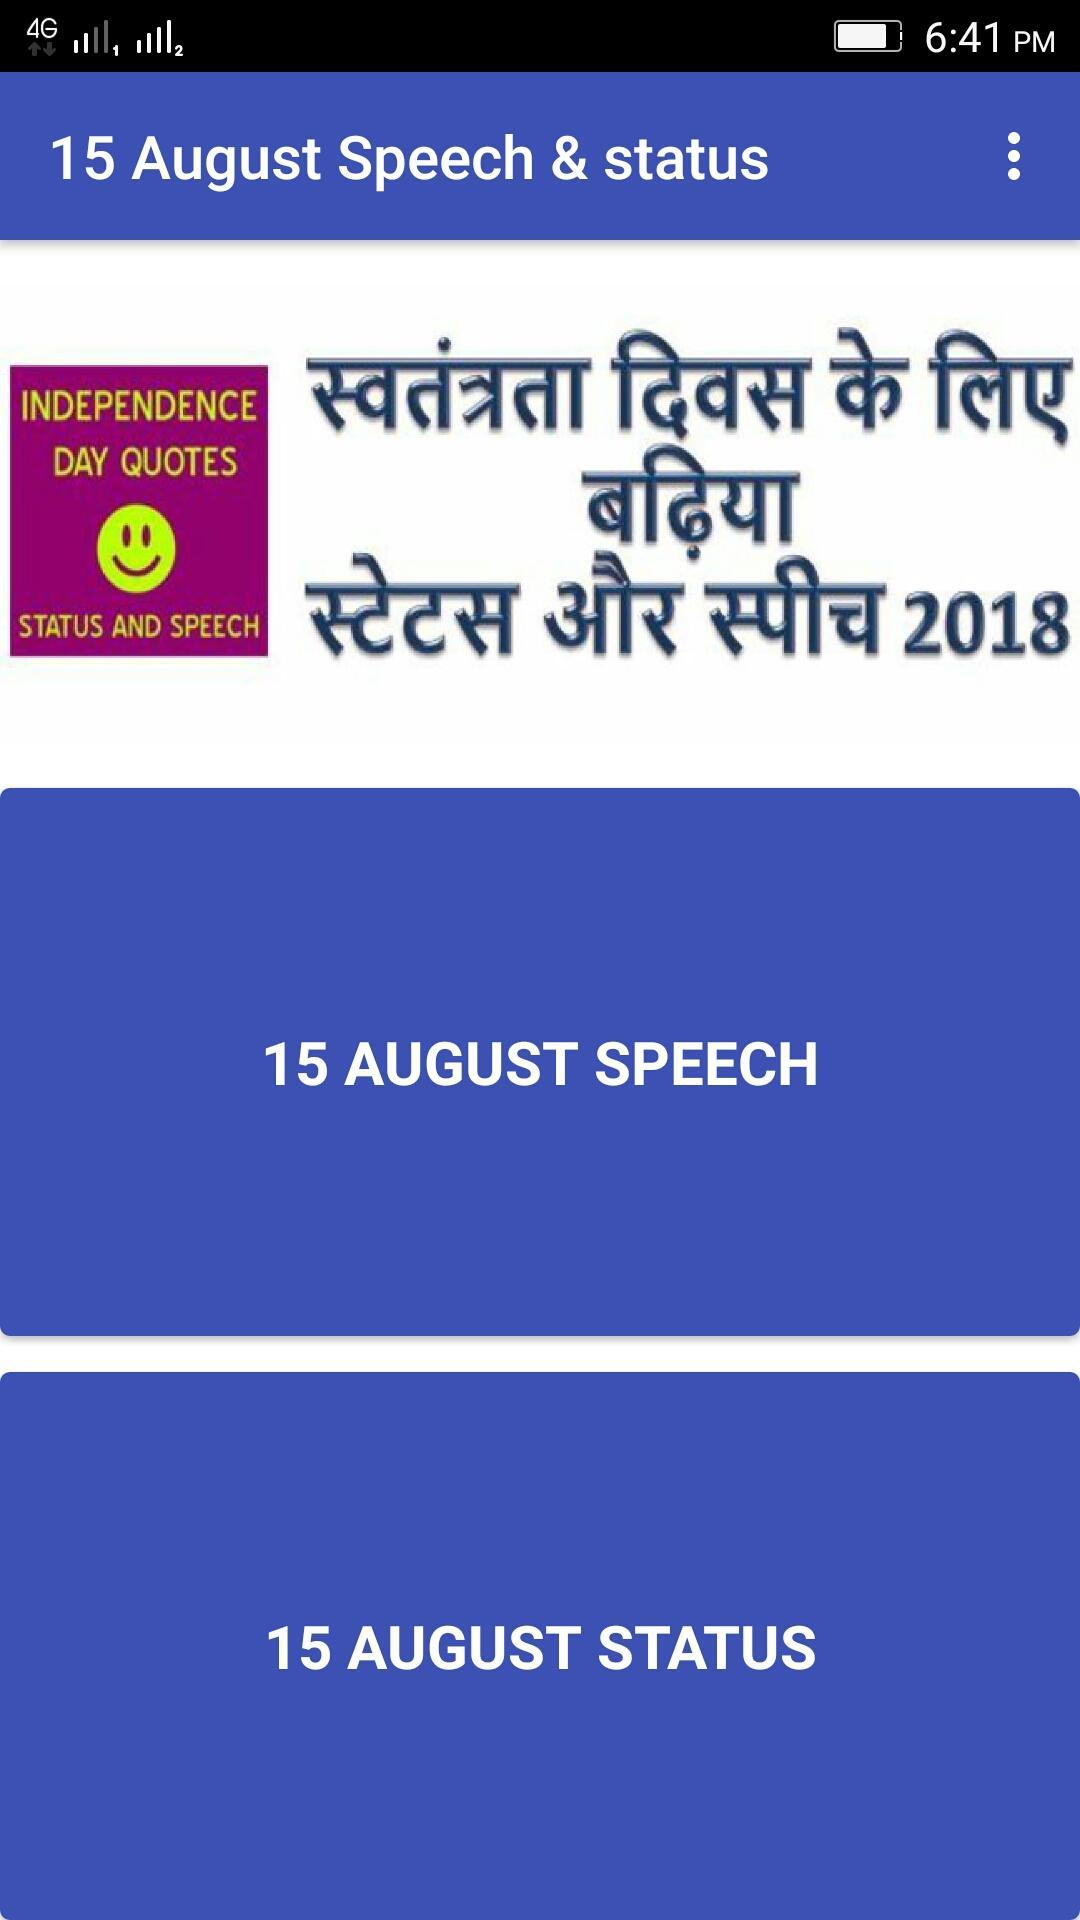 15 August Shayri & Speech(independence day status) for